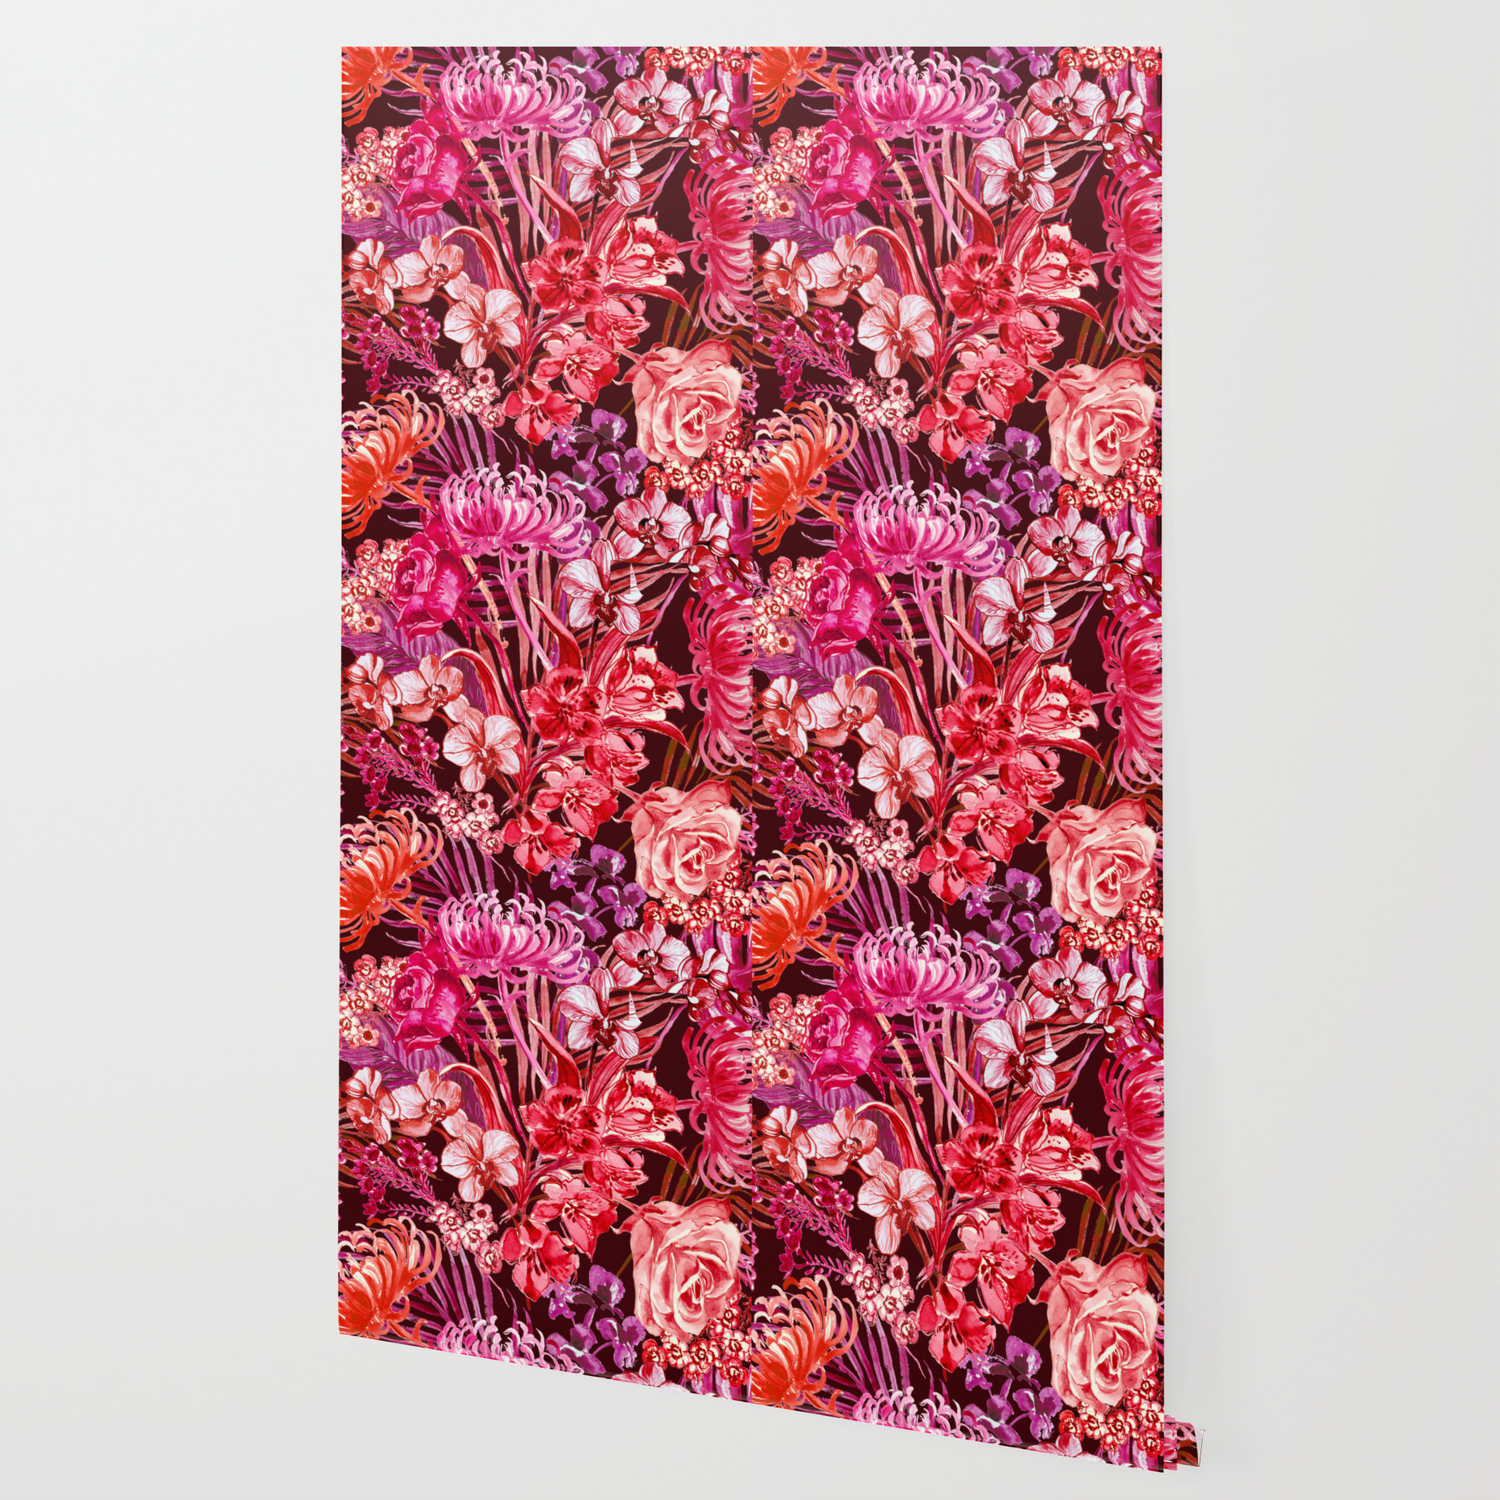 Hot Moody Floral Wallpaper By Bgartman Society6